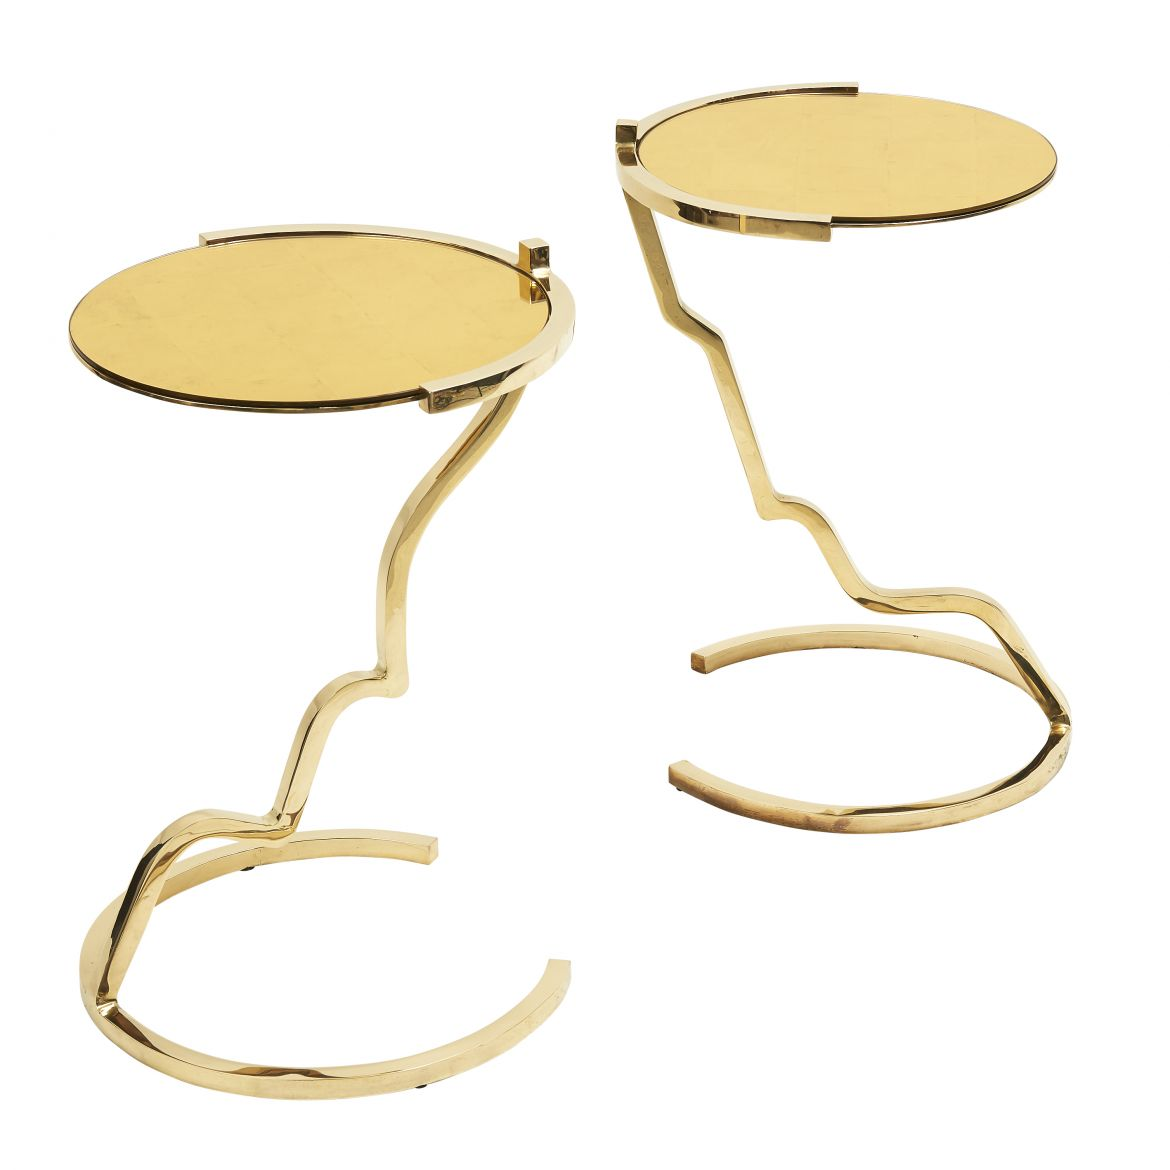 Sculpted Brass Cocteau Face Tables By Arriau